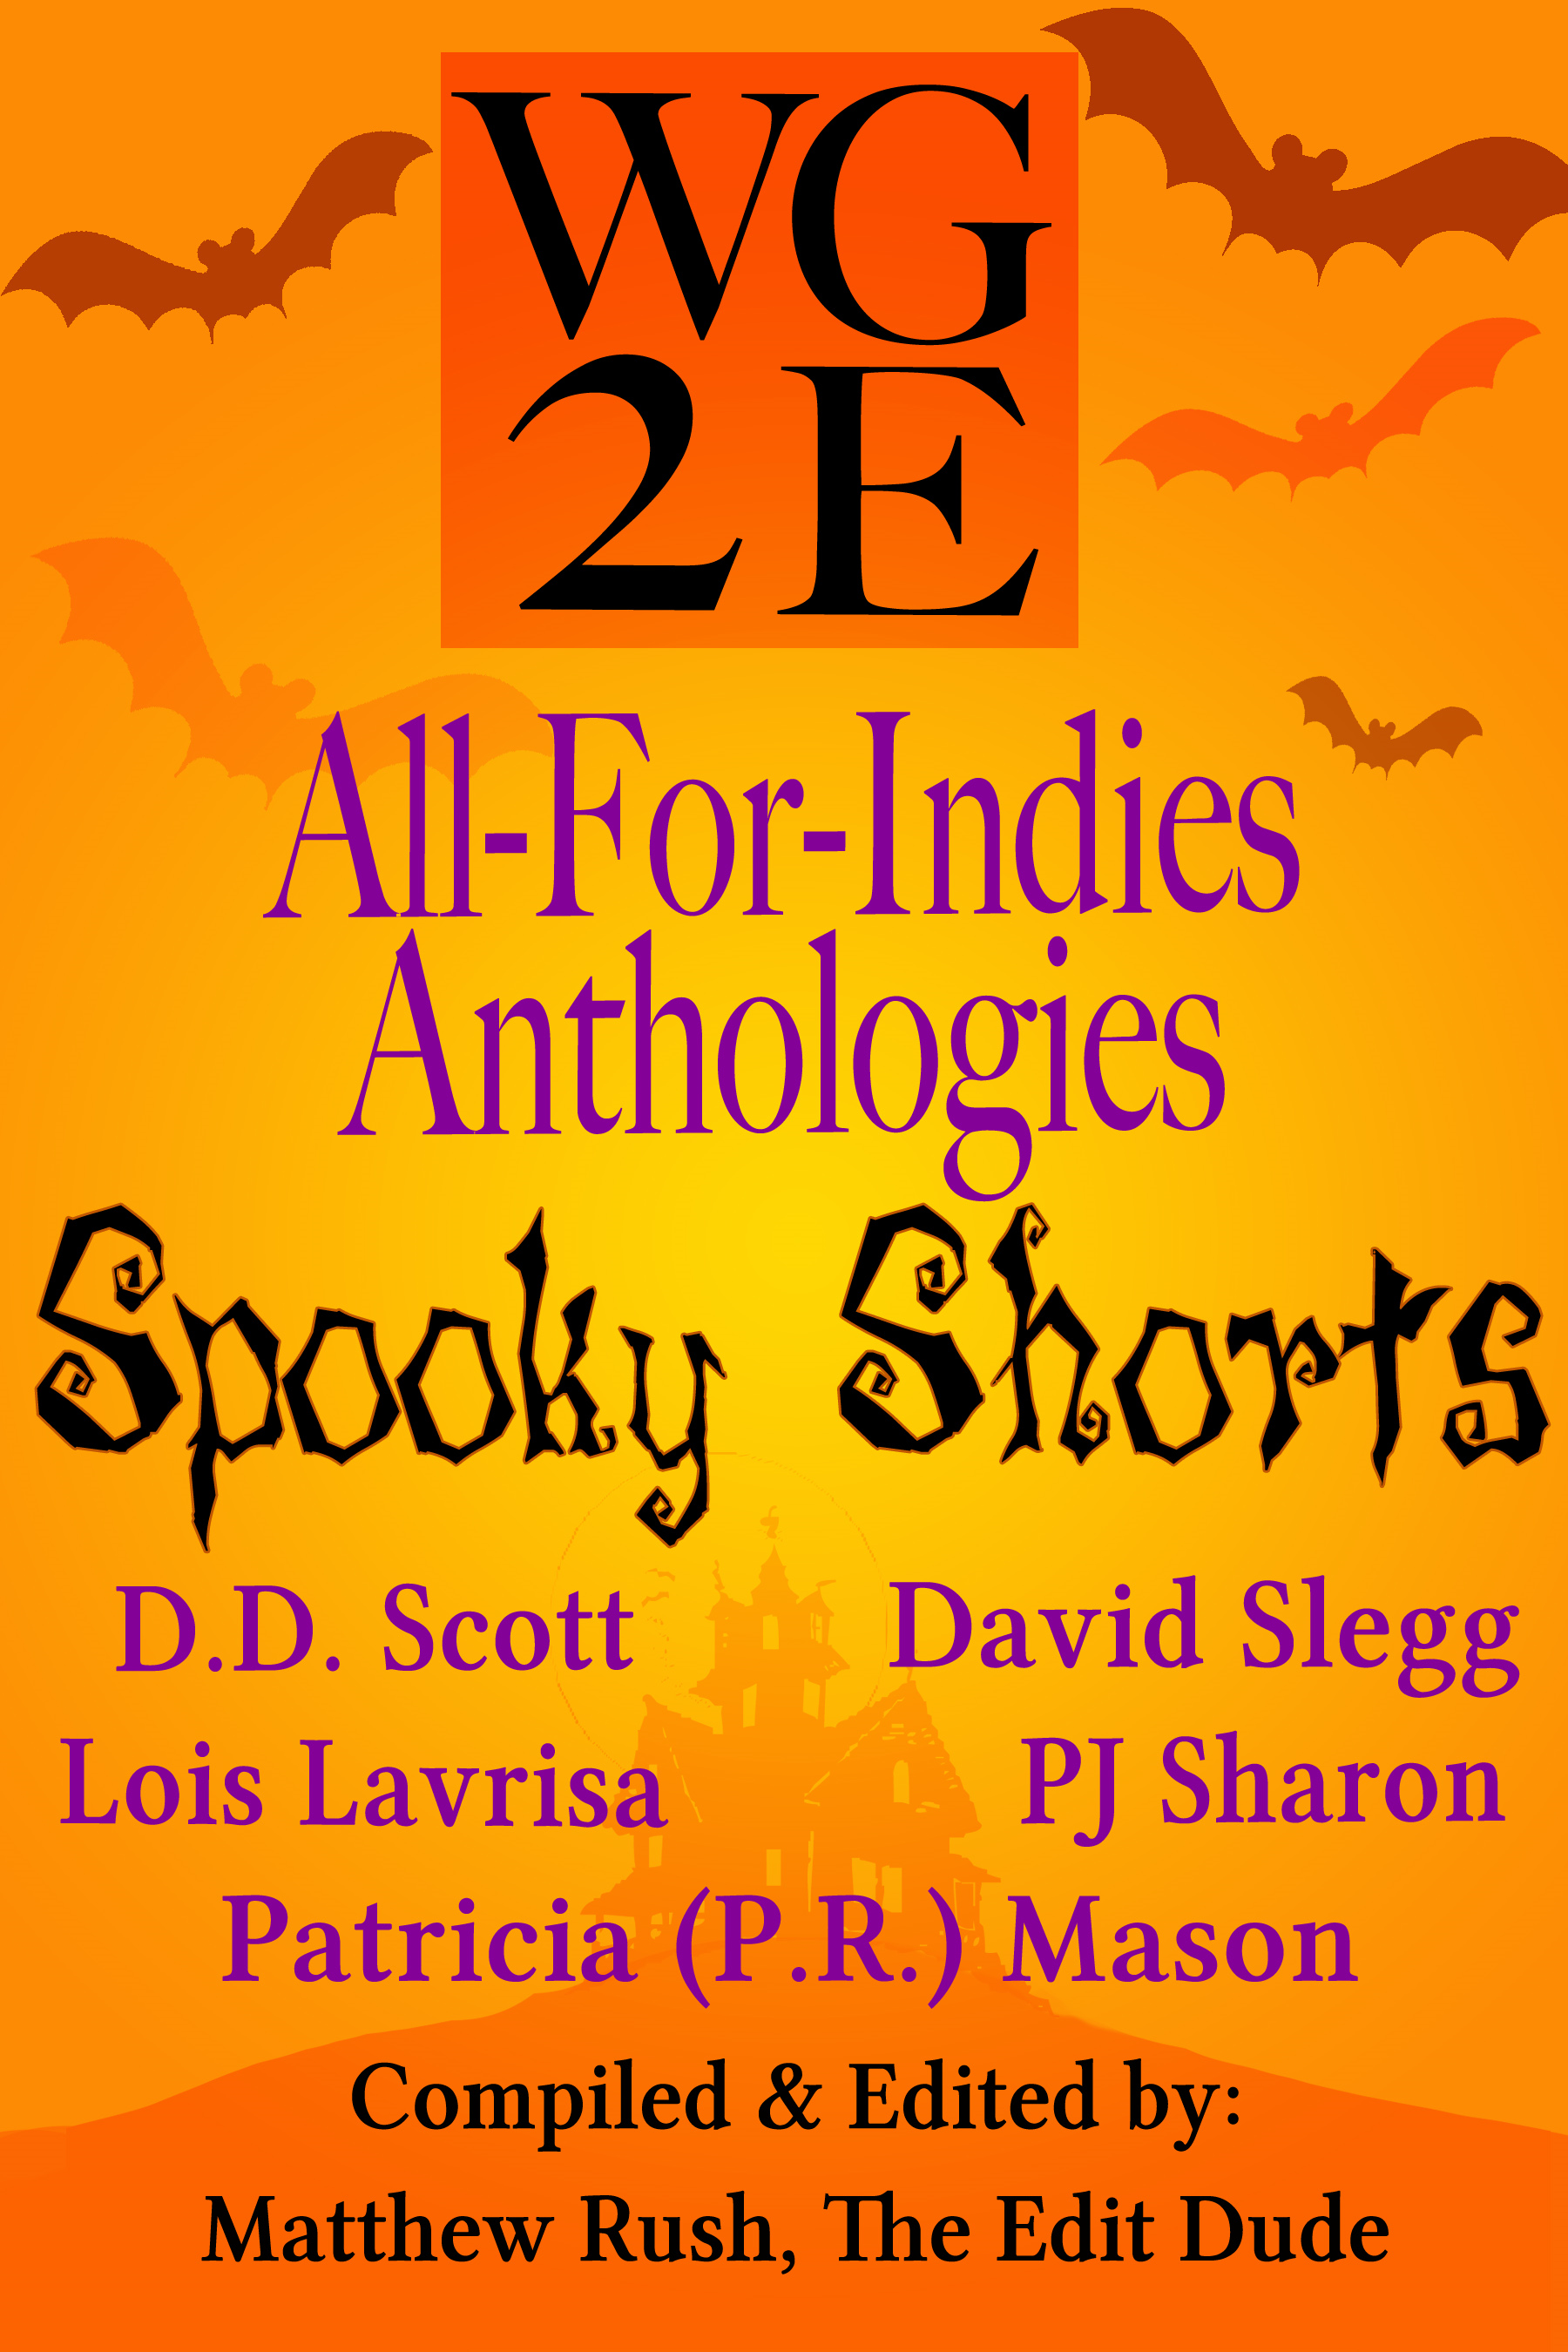 The WG2E All-For-Indies Anthologies: Spooky Shorts Edition